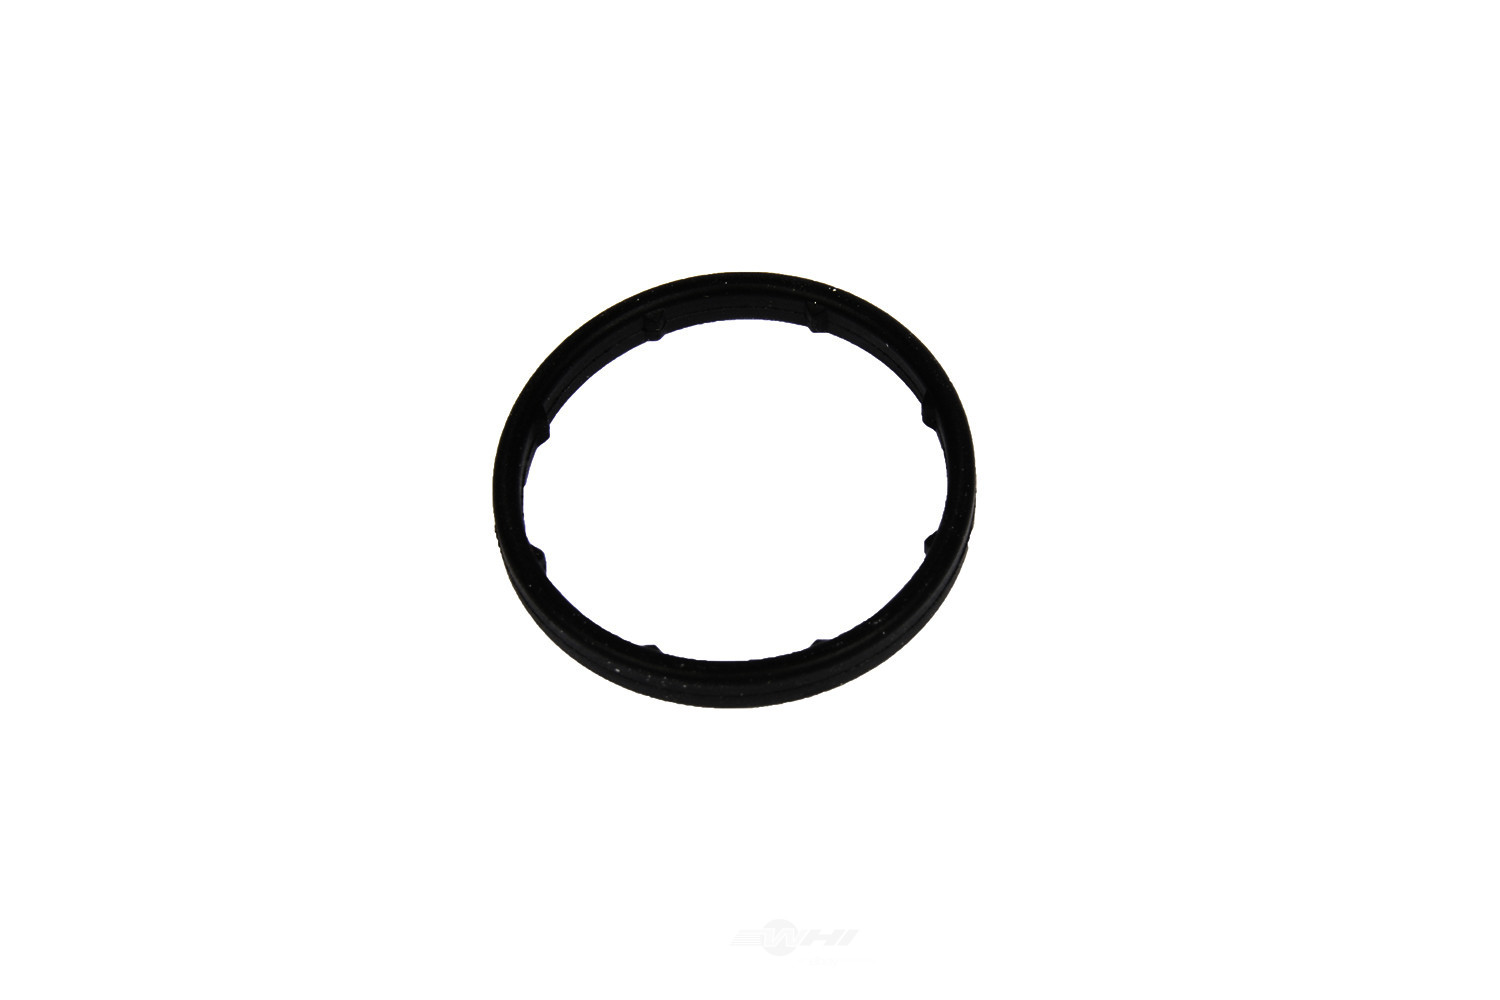 ACDELCO GM ORIGINAL EQUIPMENT - Thermostat Bypass Pipe Seal - DCB 24445723